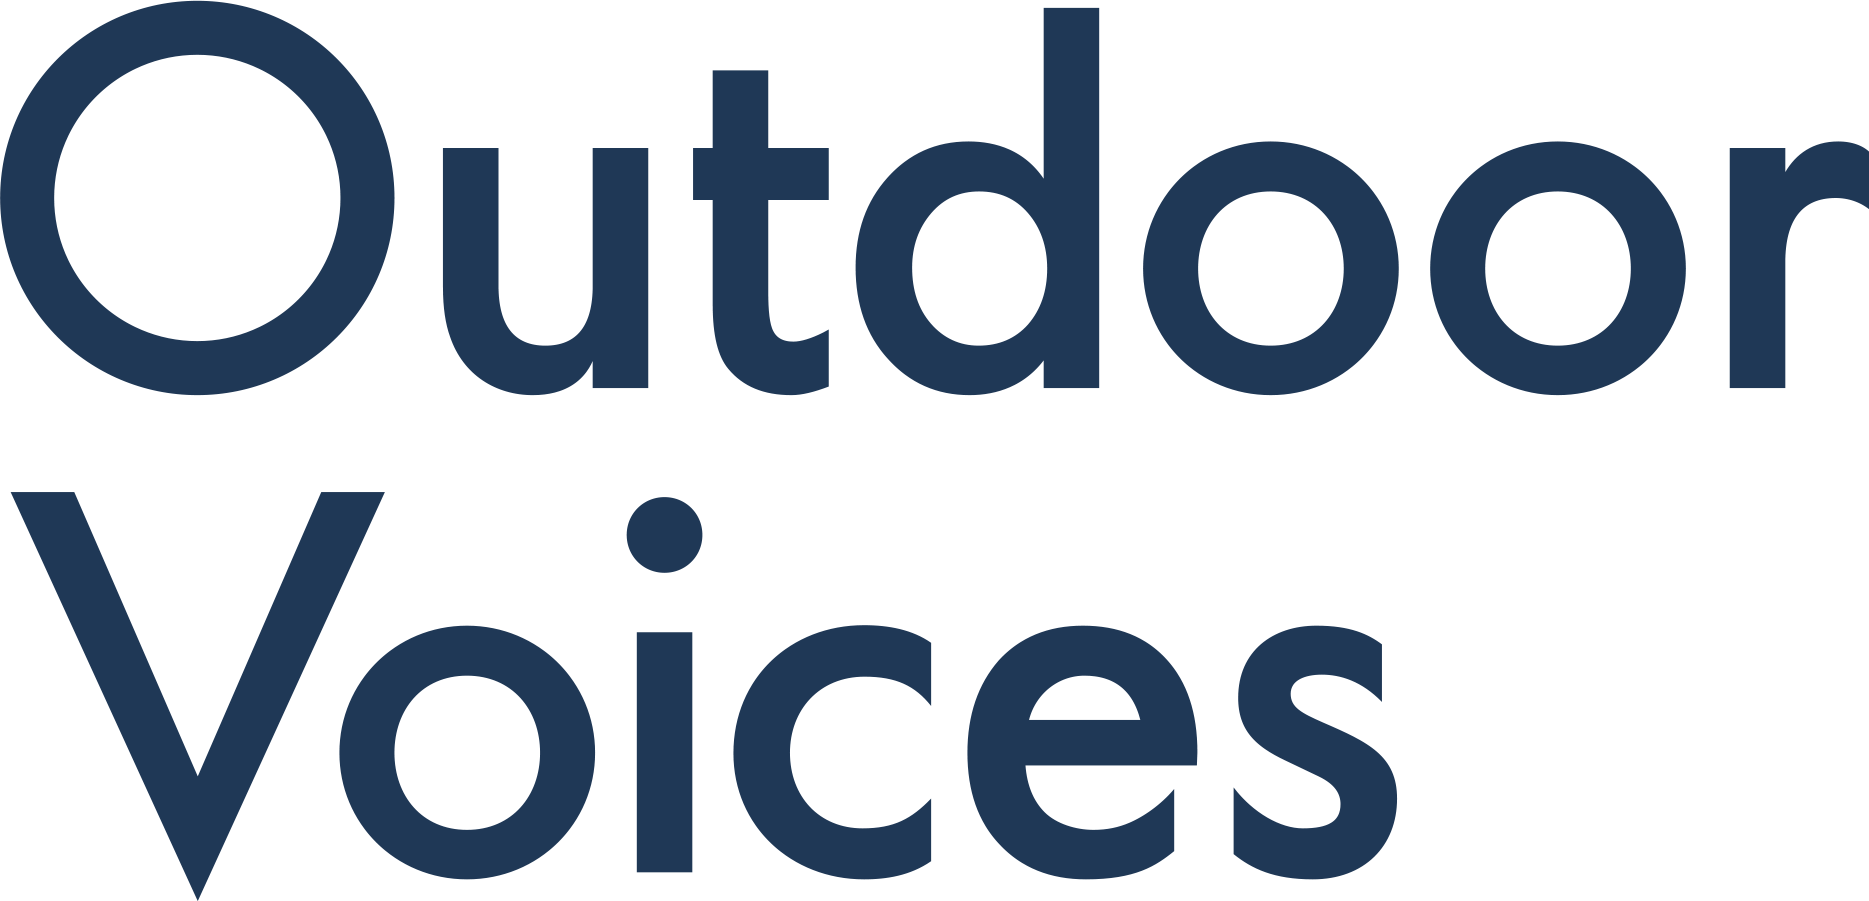 Outdoor Voices works with Jam to create valuable connections across the company.